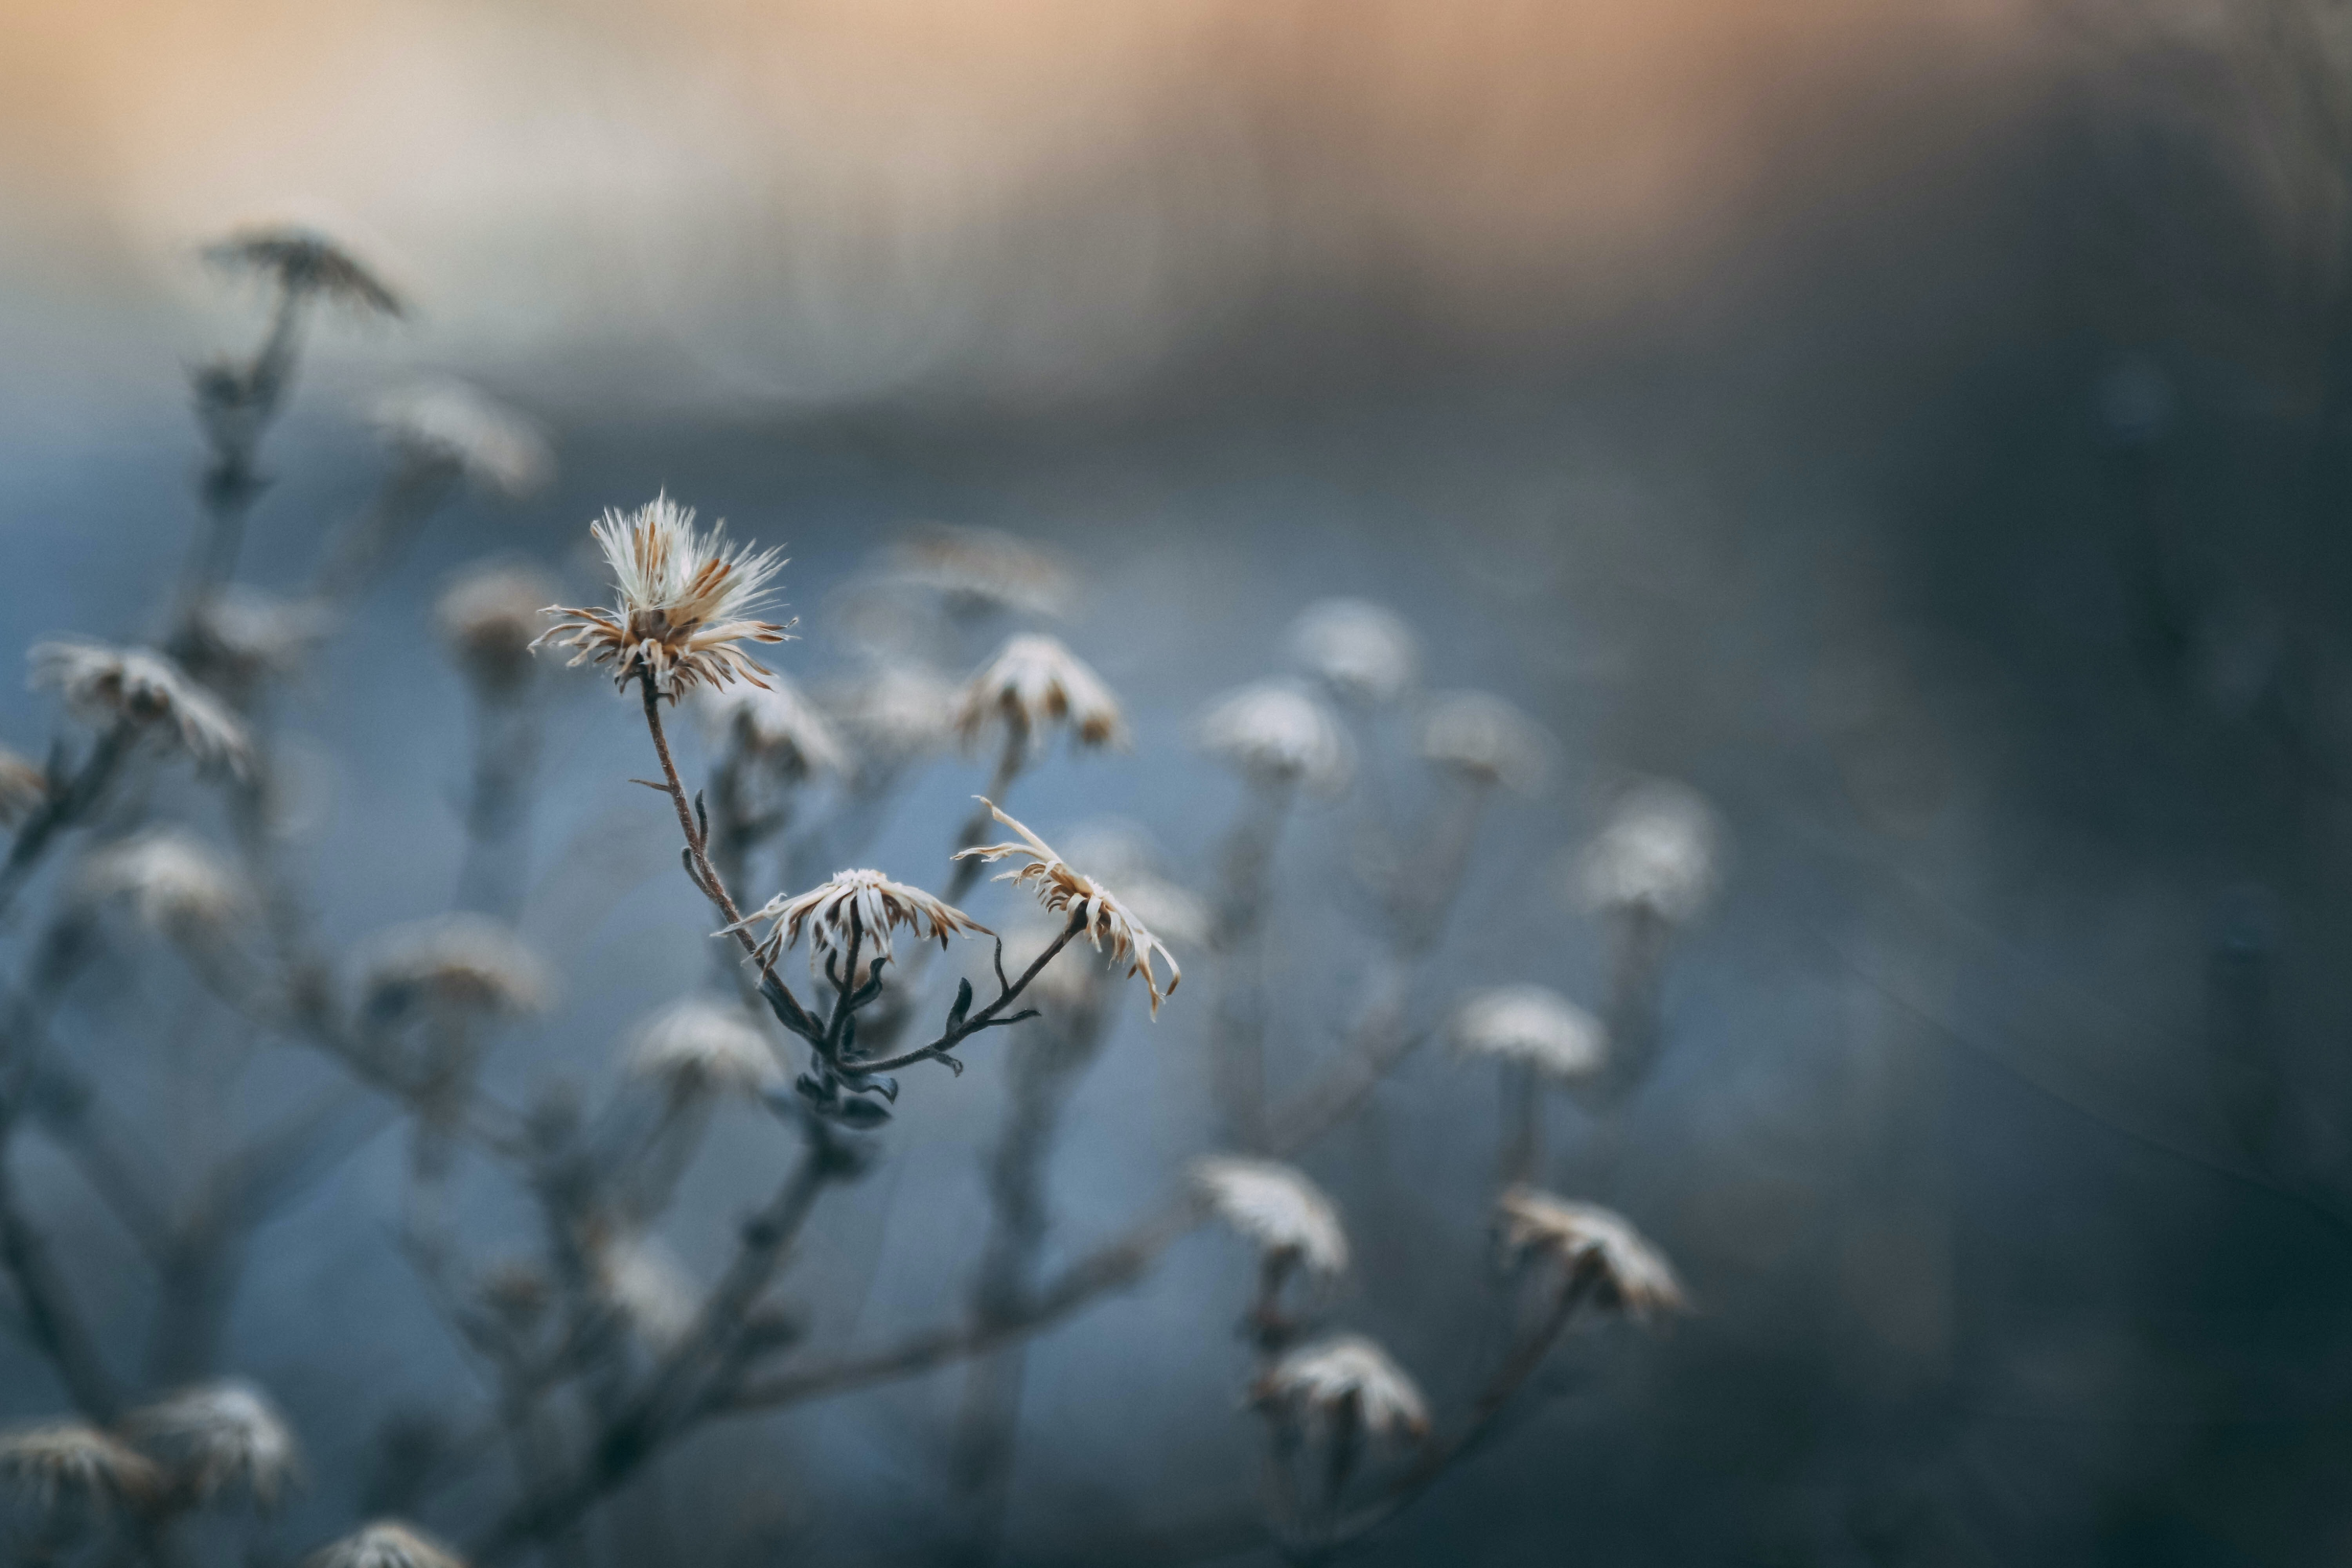 close view of white withered dandelions